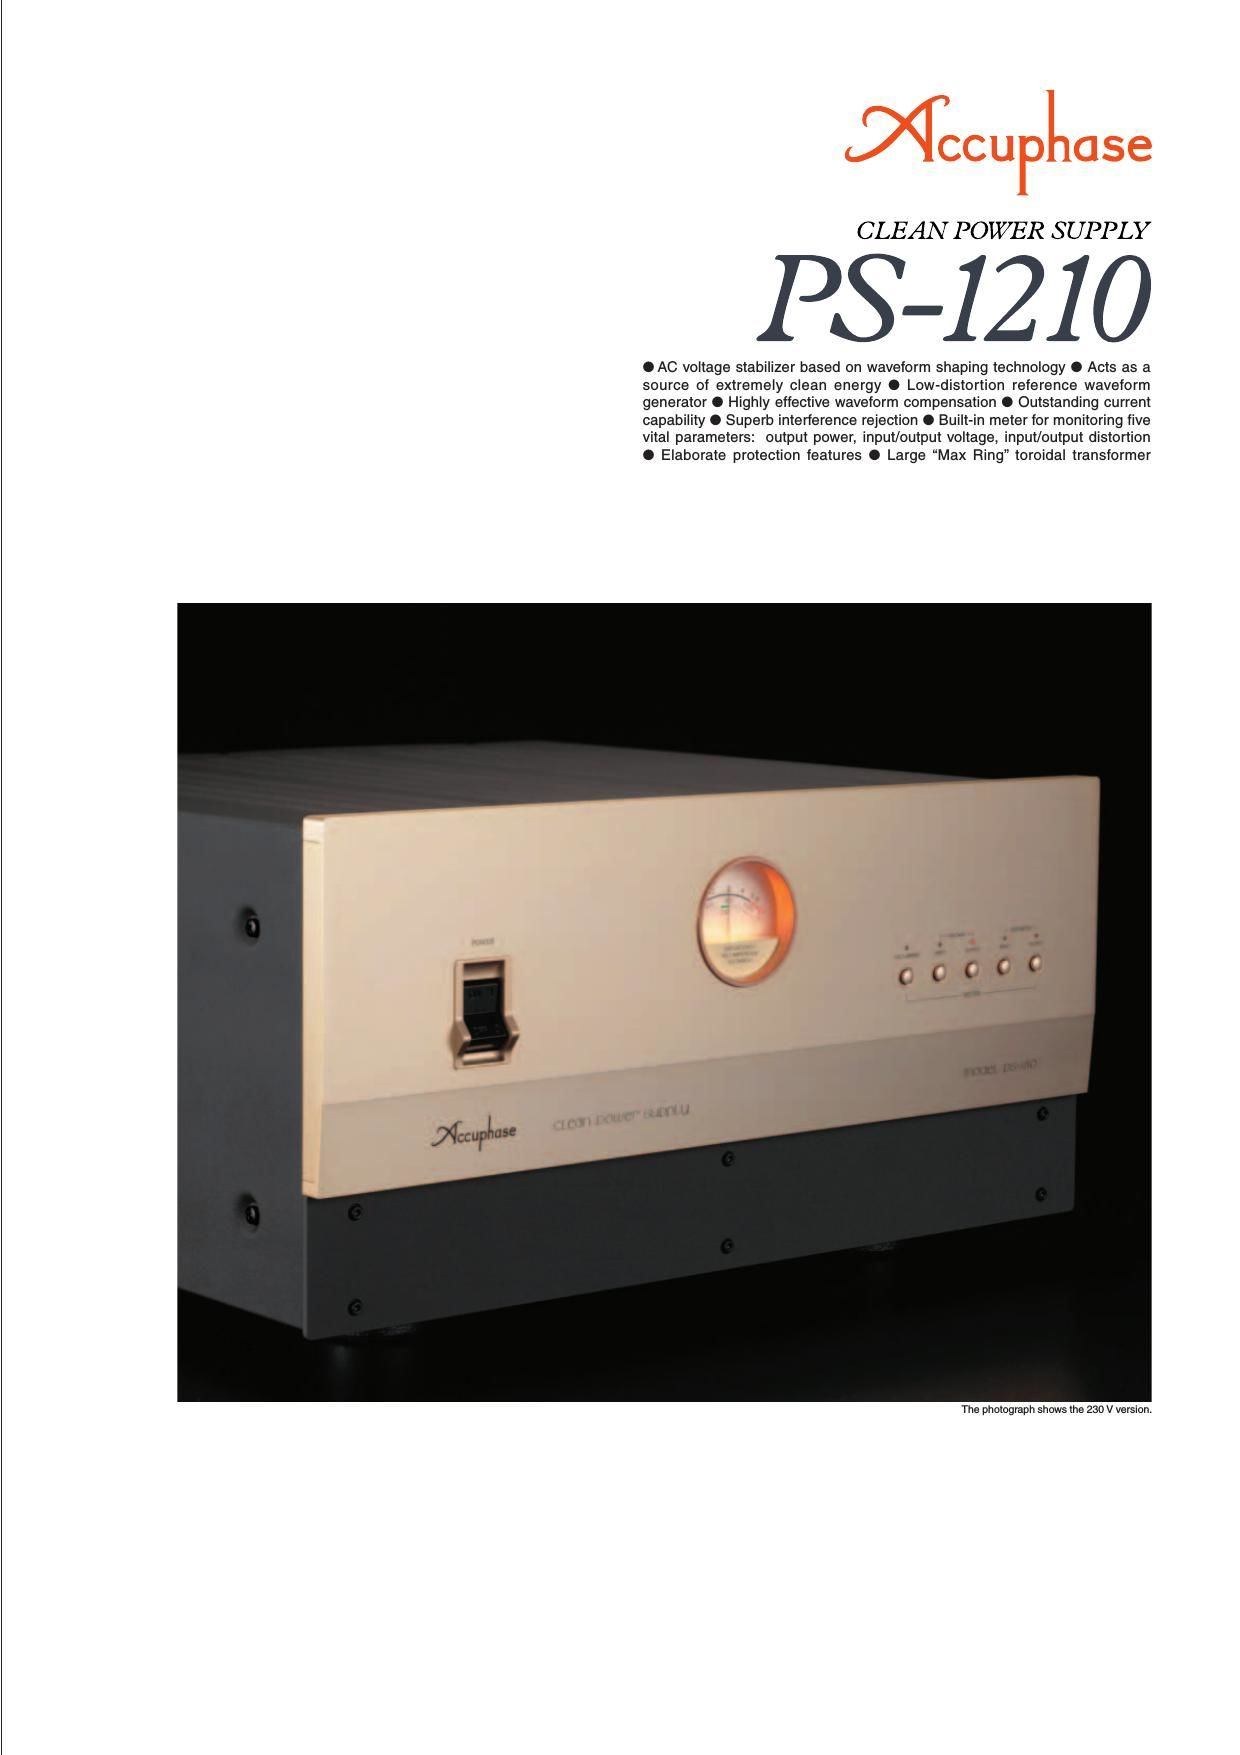 Accuphase PS 1210 Brochure